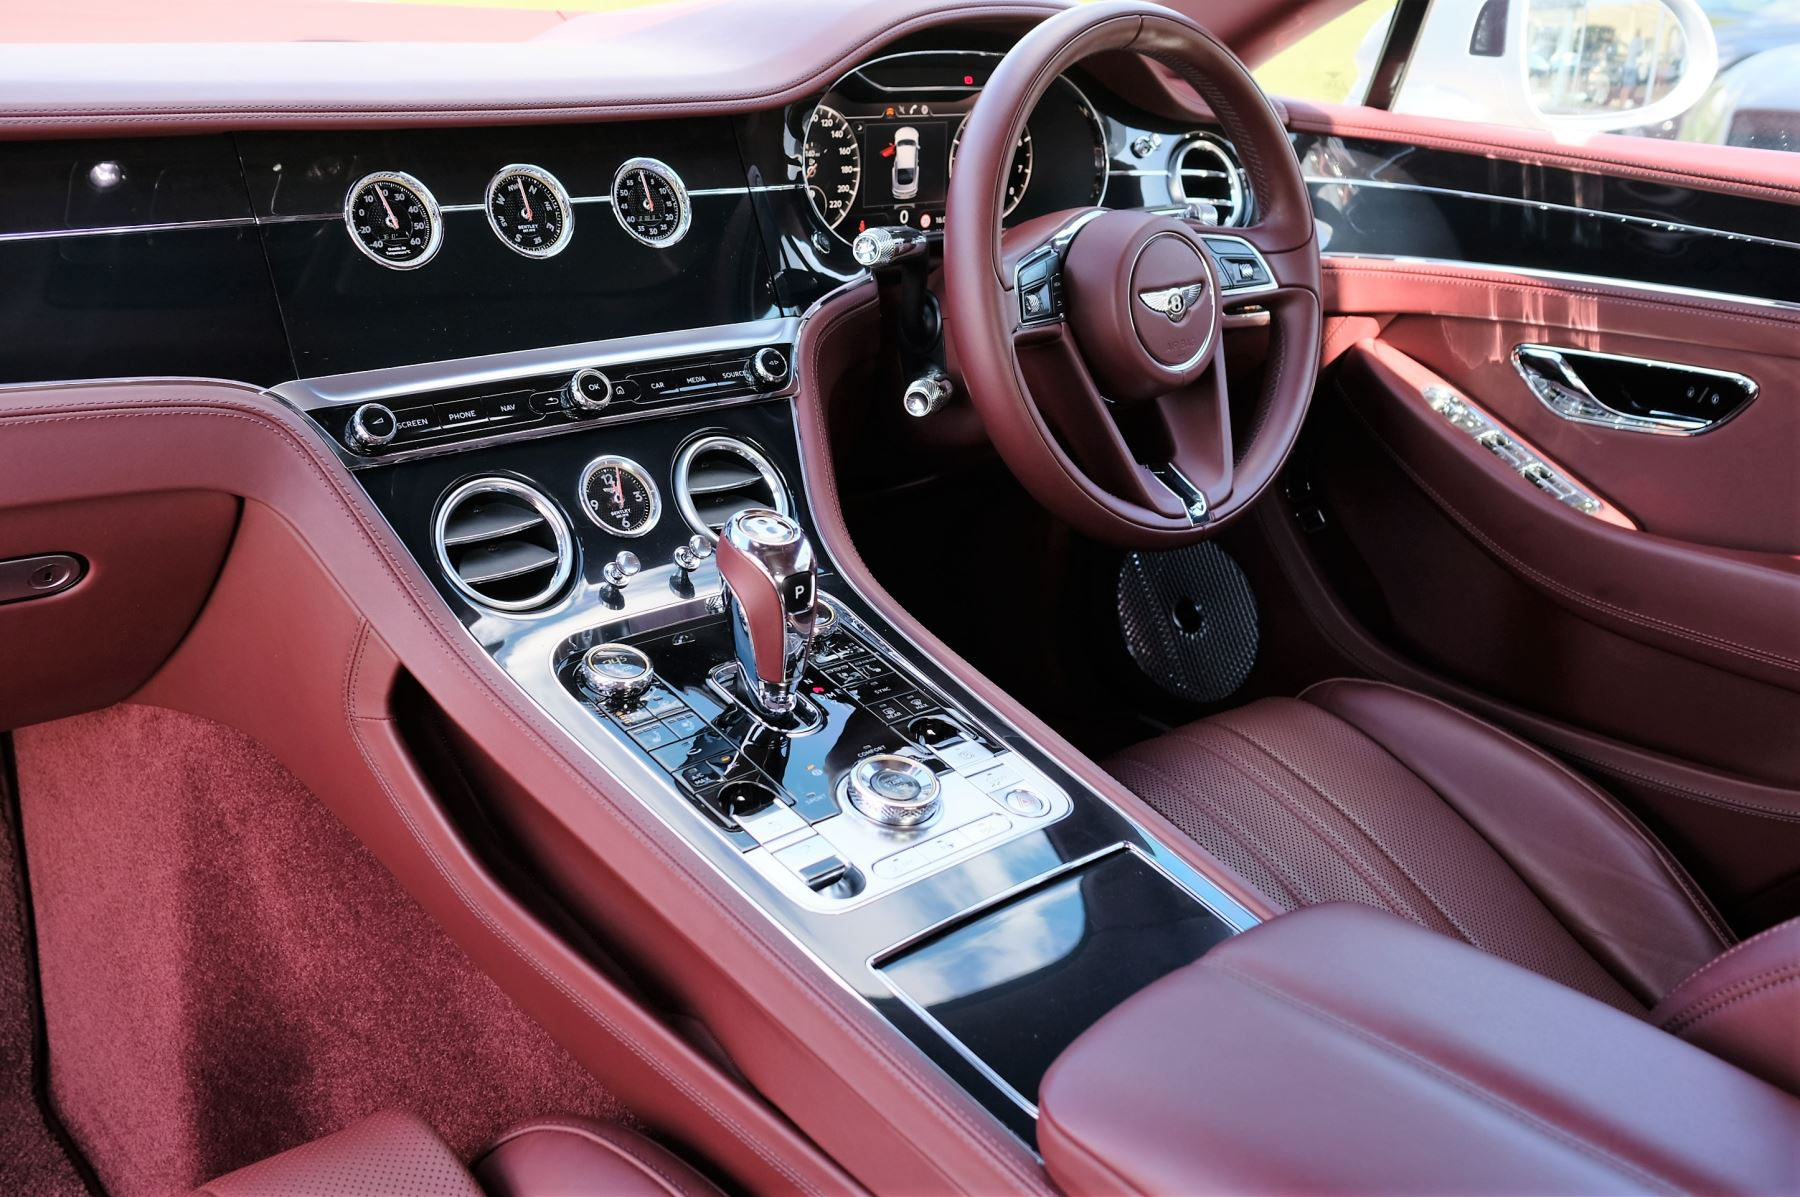 Bentley Continental GT 6.0 W12 Centenary, City and Touring Specification image 11